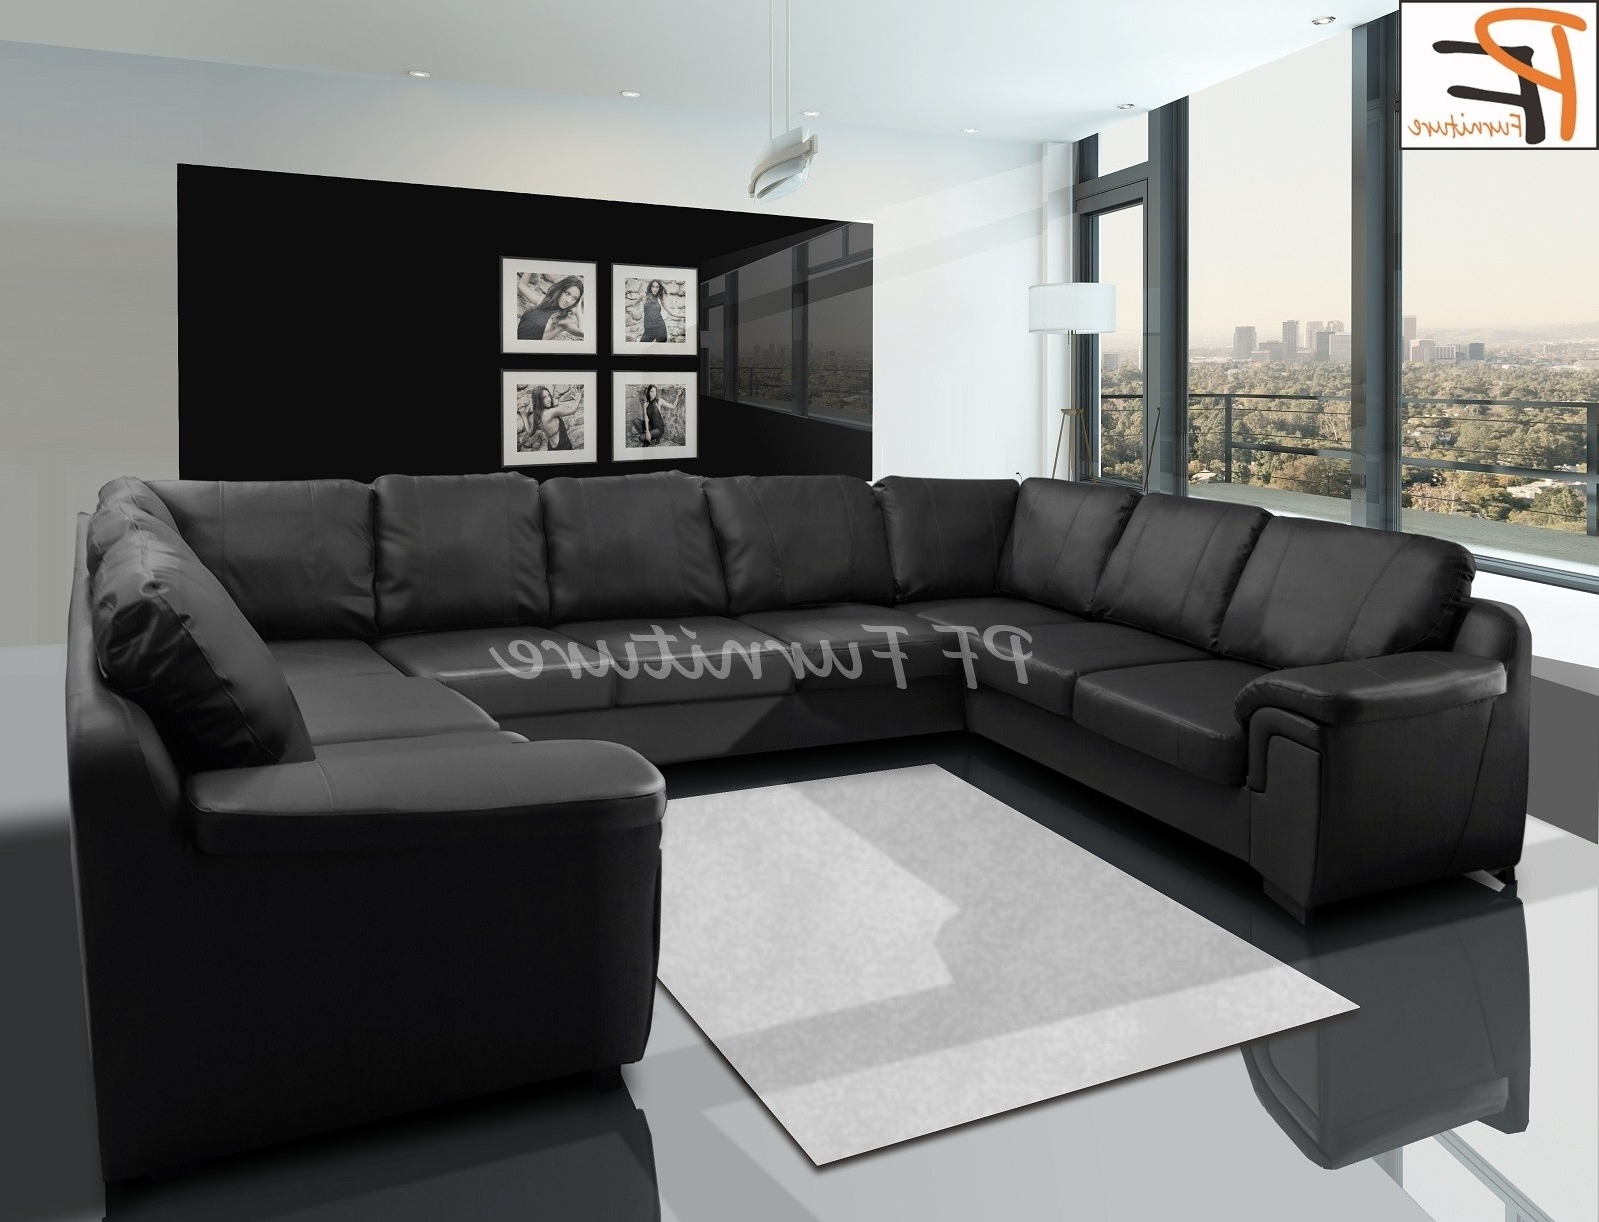 Large U Shaped Sofa – Home And Textiles Inside Most Popular Large U Shaped Sectionals (View 8 of 15)